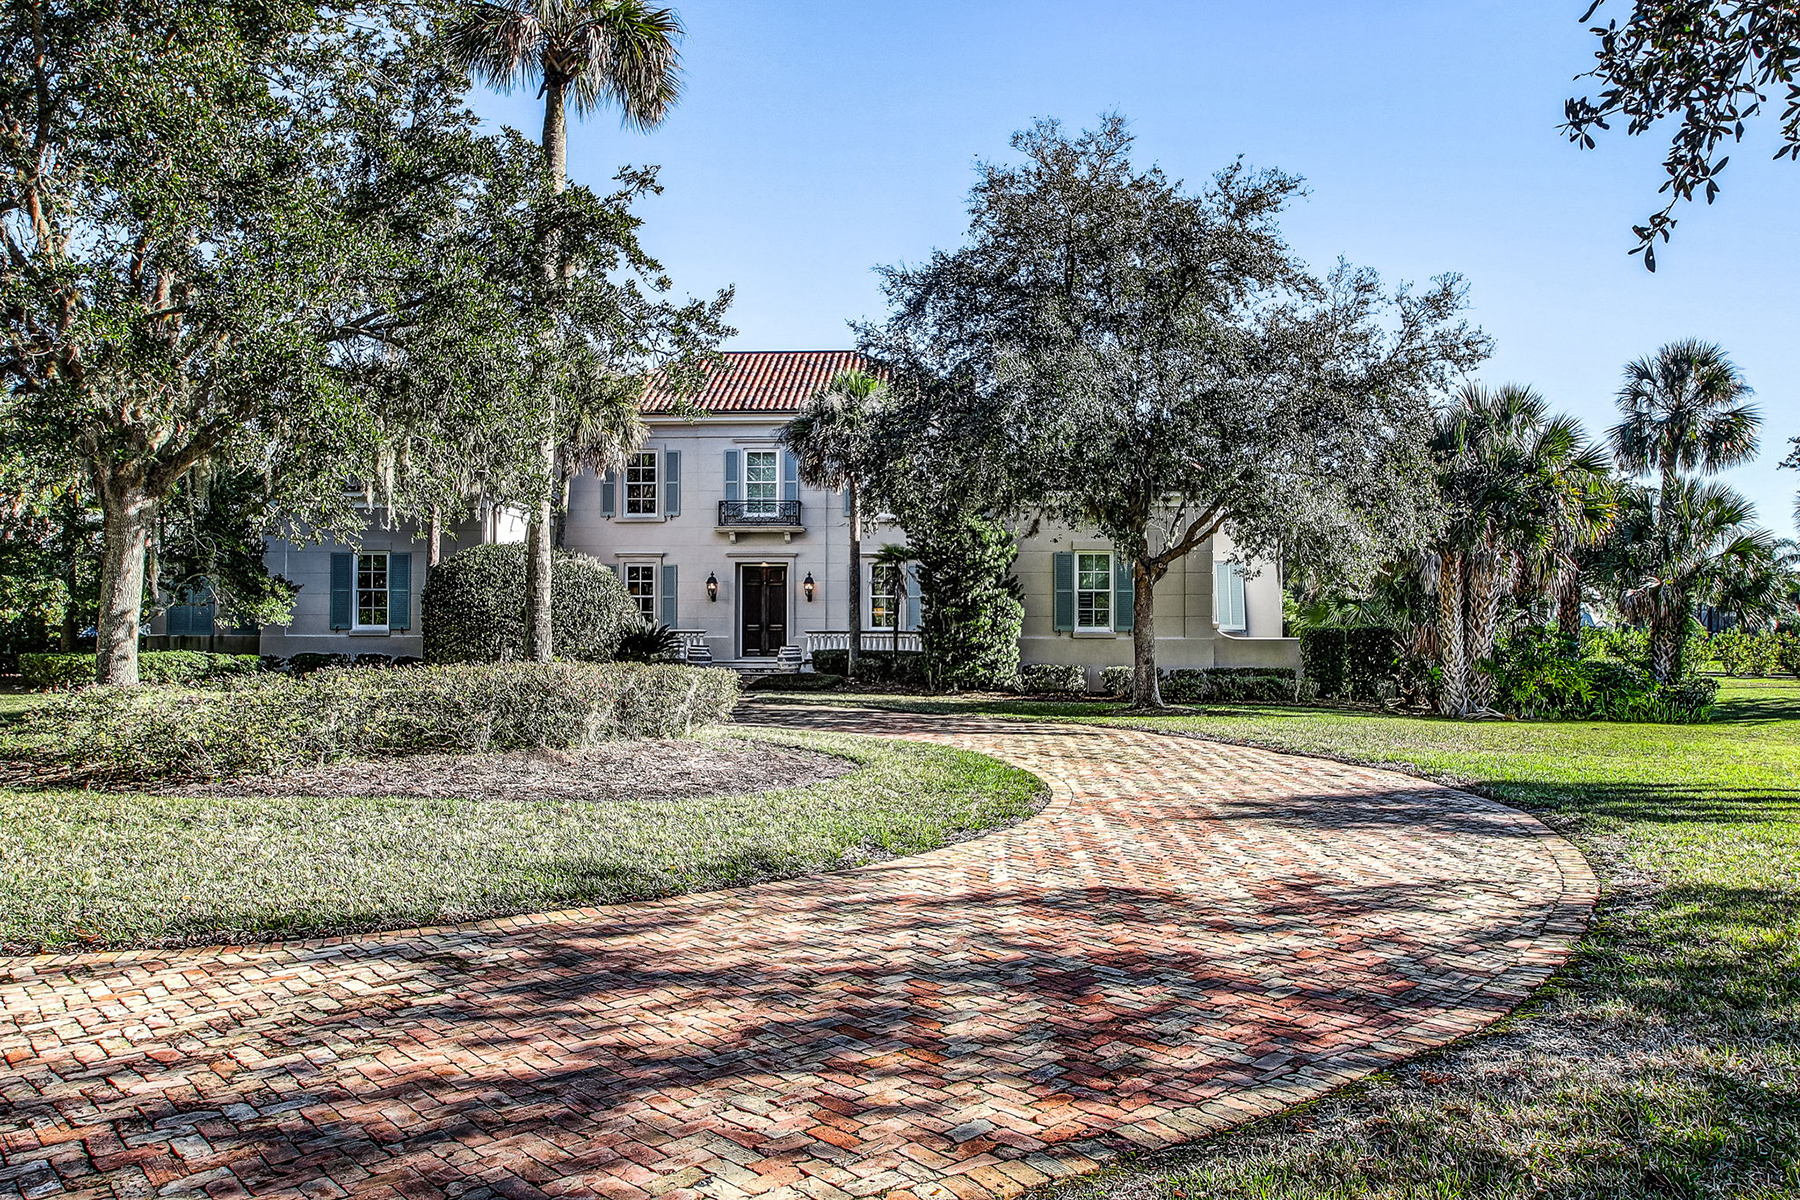 Single Family Homes for Sale at 24732 Harbour View Drive Ponte Vedra Beach, Florida 32082 United States